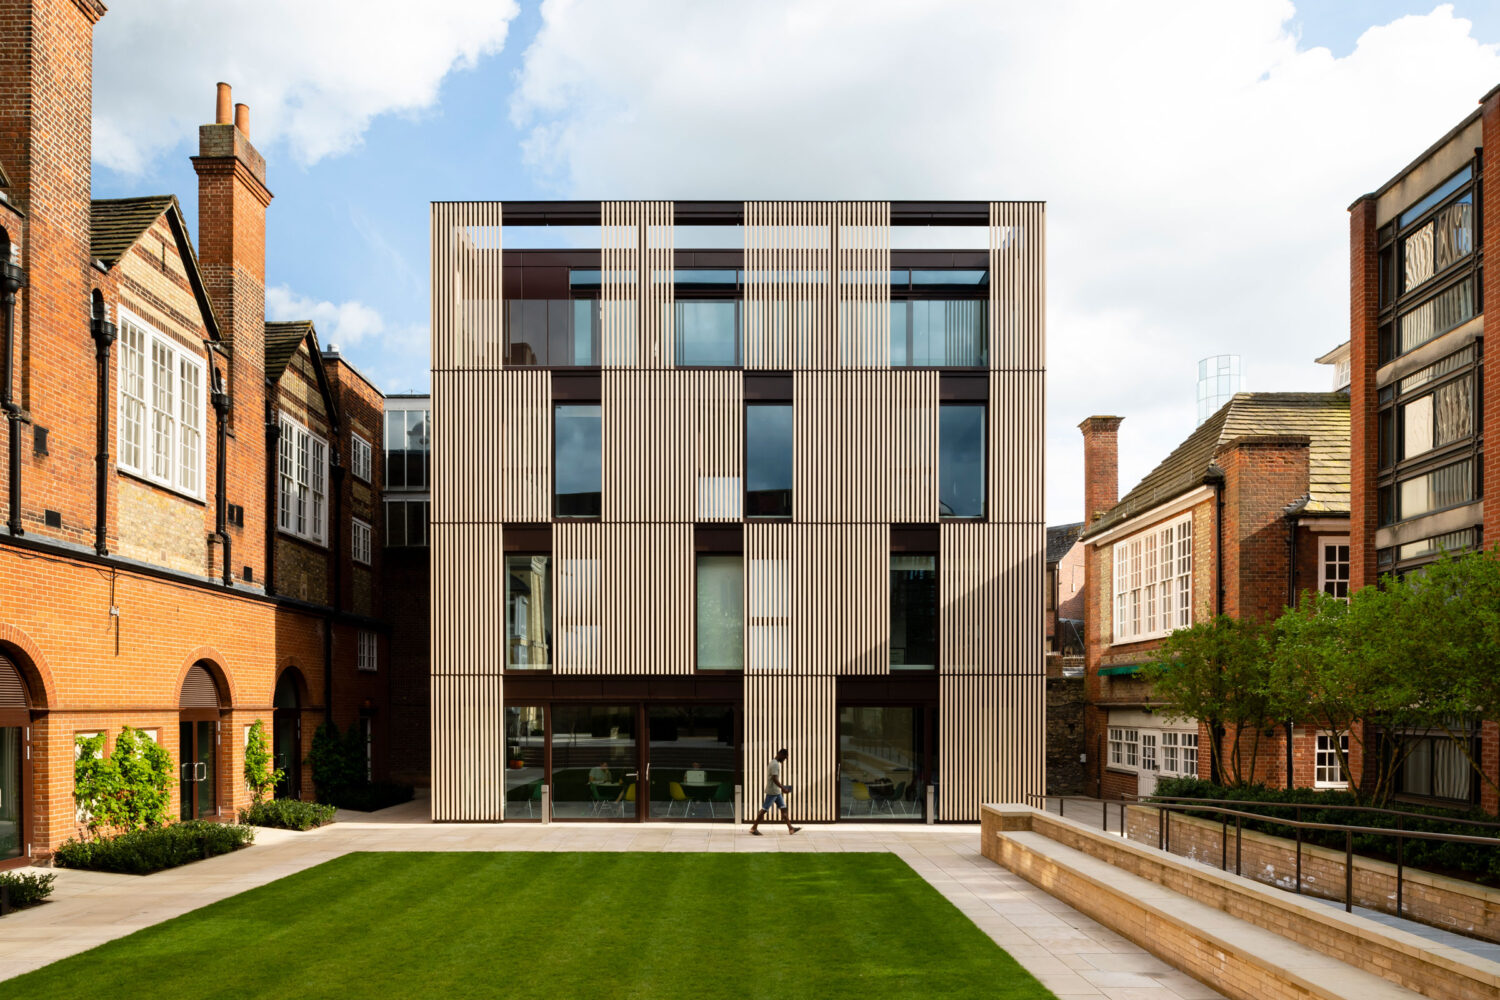 Design Engine Hubert Perrodo Building, St Peter's College entrance facade daytime. Jim Stephenson Copyright